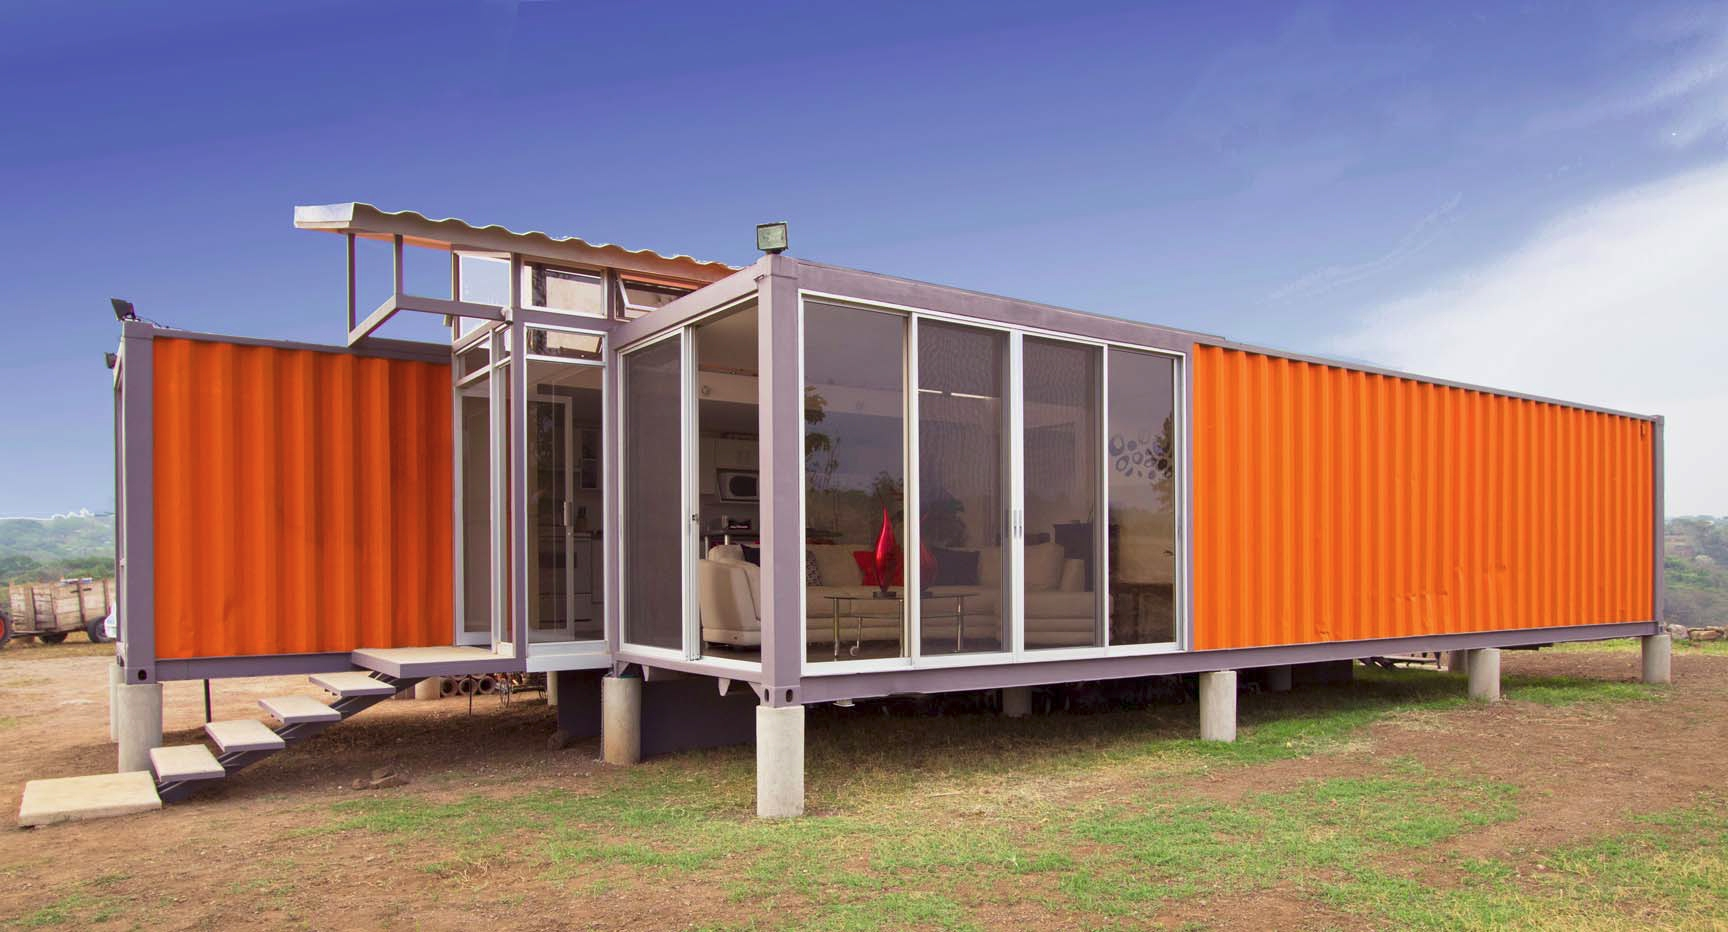 Shipping Containers as Homes 1728 x 932